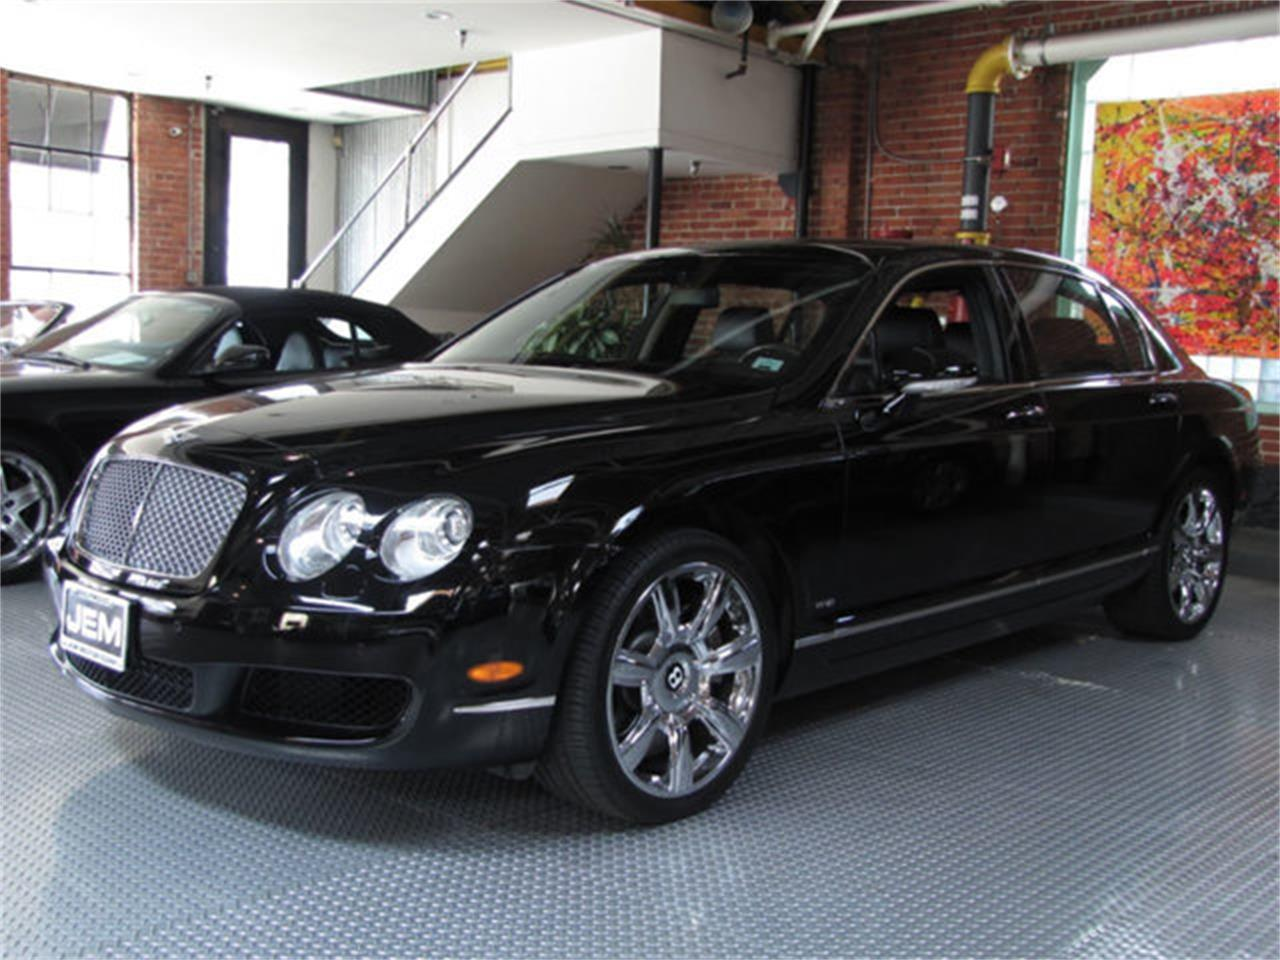 2006 Bentley Continental Flying Spur (CC-1134668) for sale in Hollywood, California